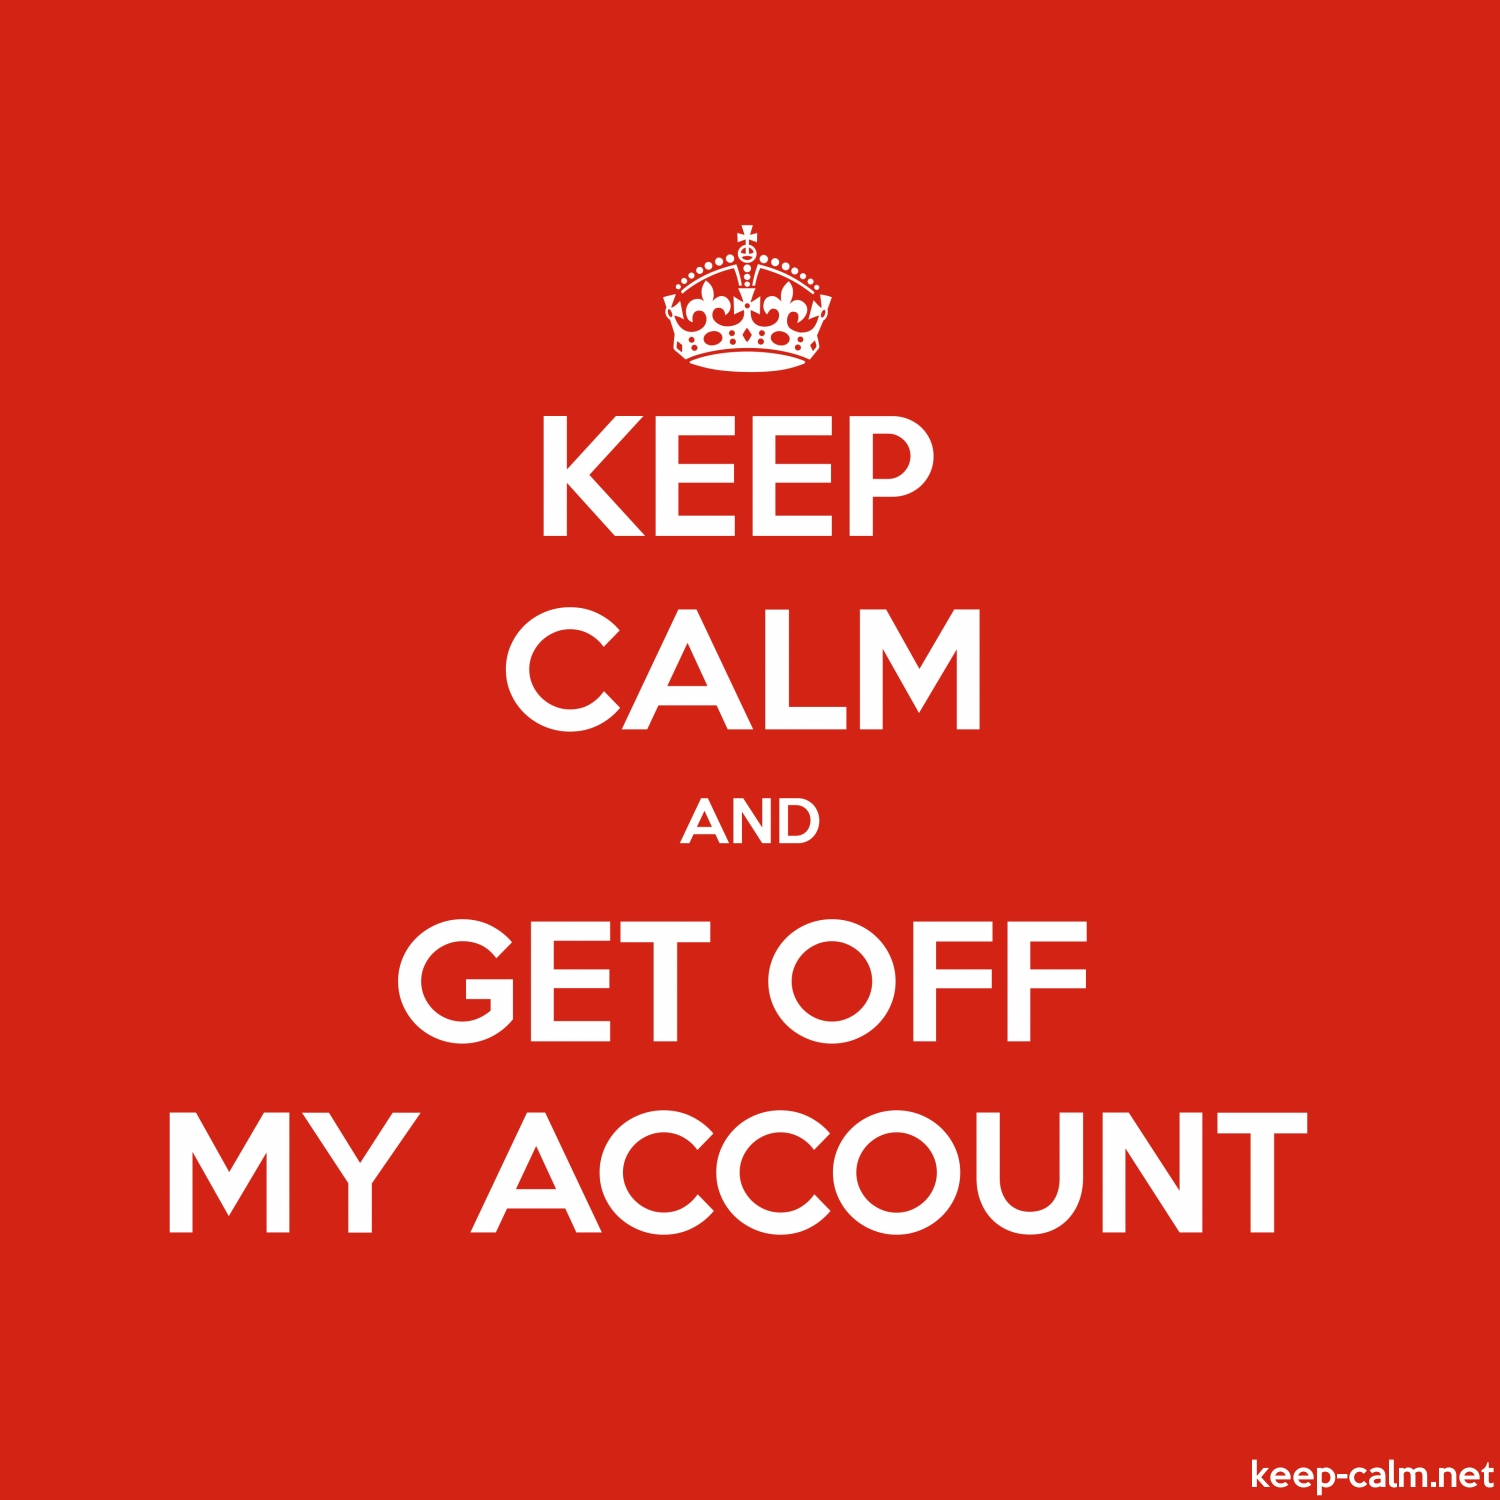 KEEP CALM AND GET OFF MY ACCOUNT